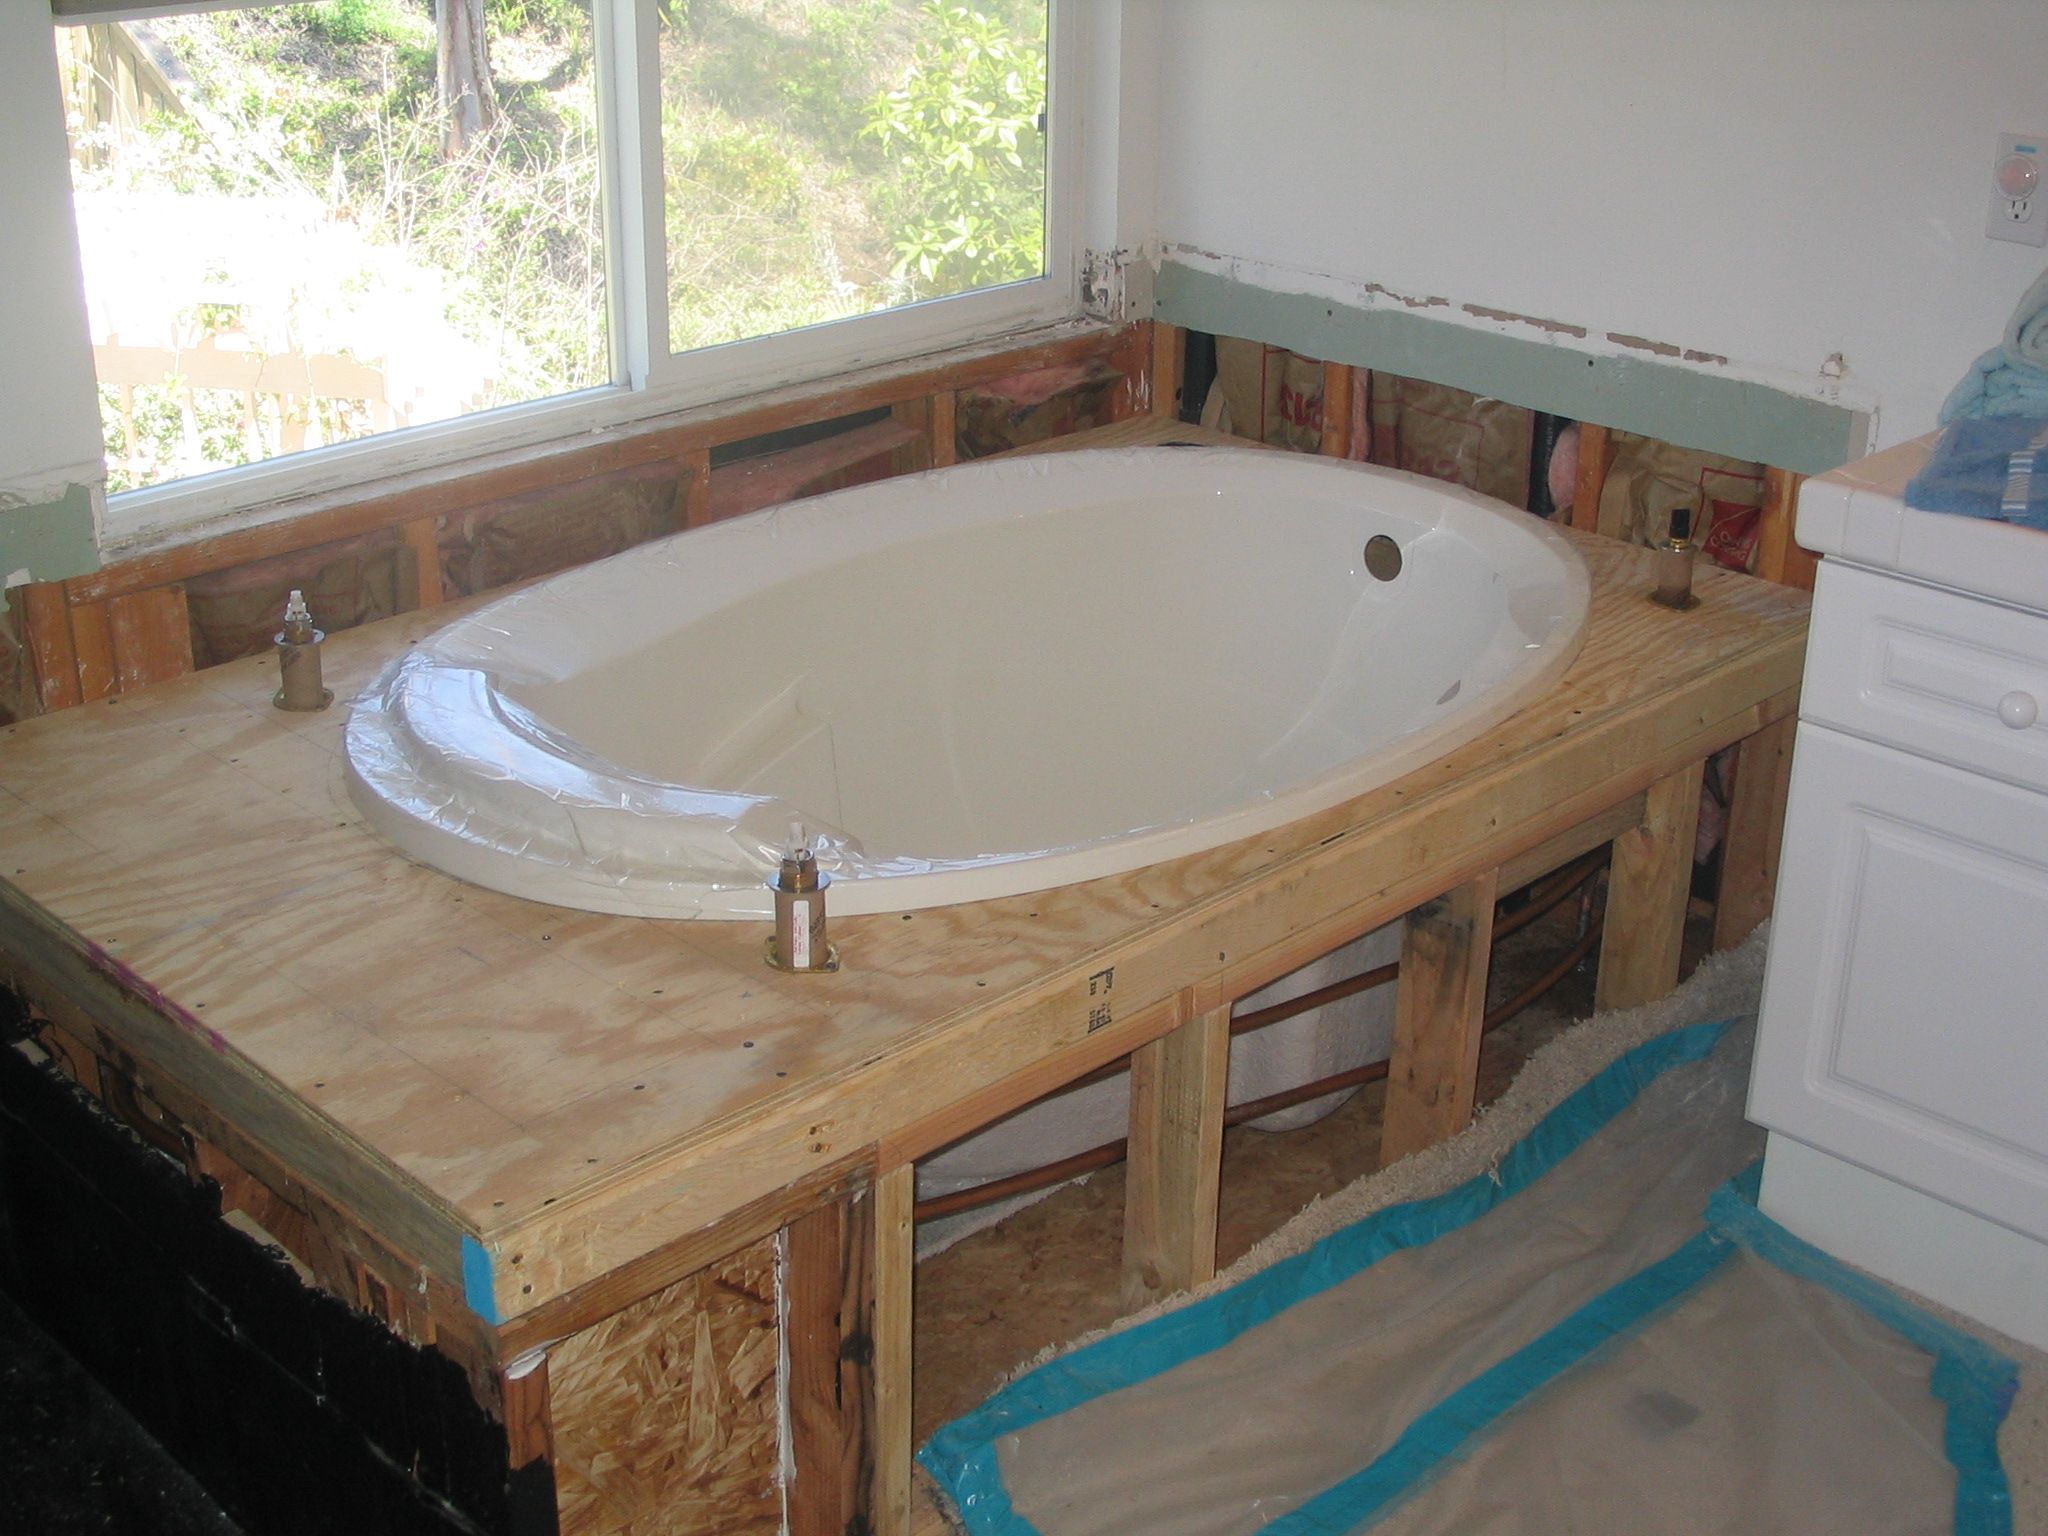 Fitting a bath how to install a new bathtub bath tubs for New bathtub designs